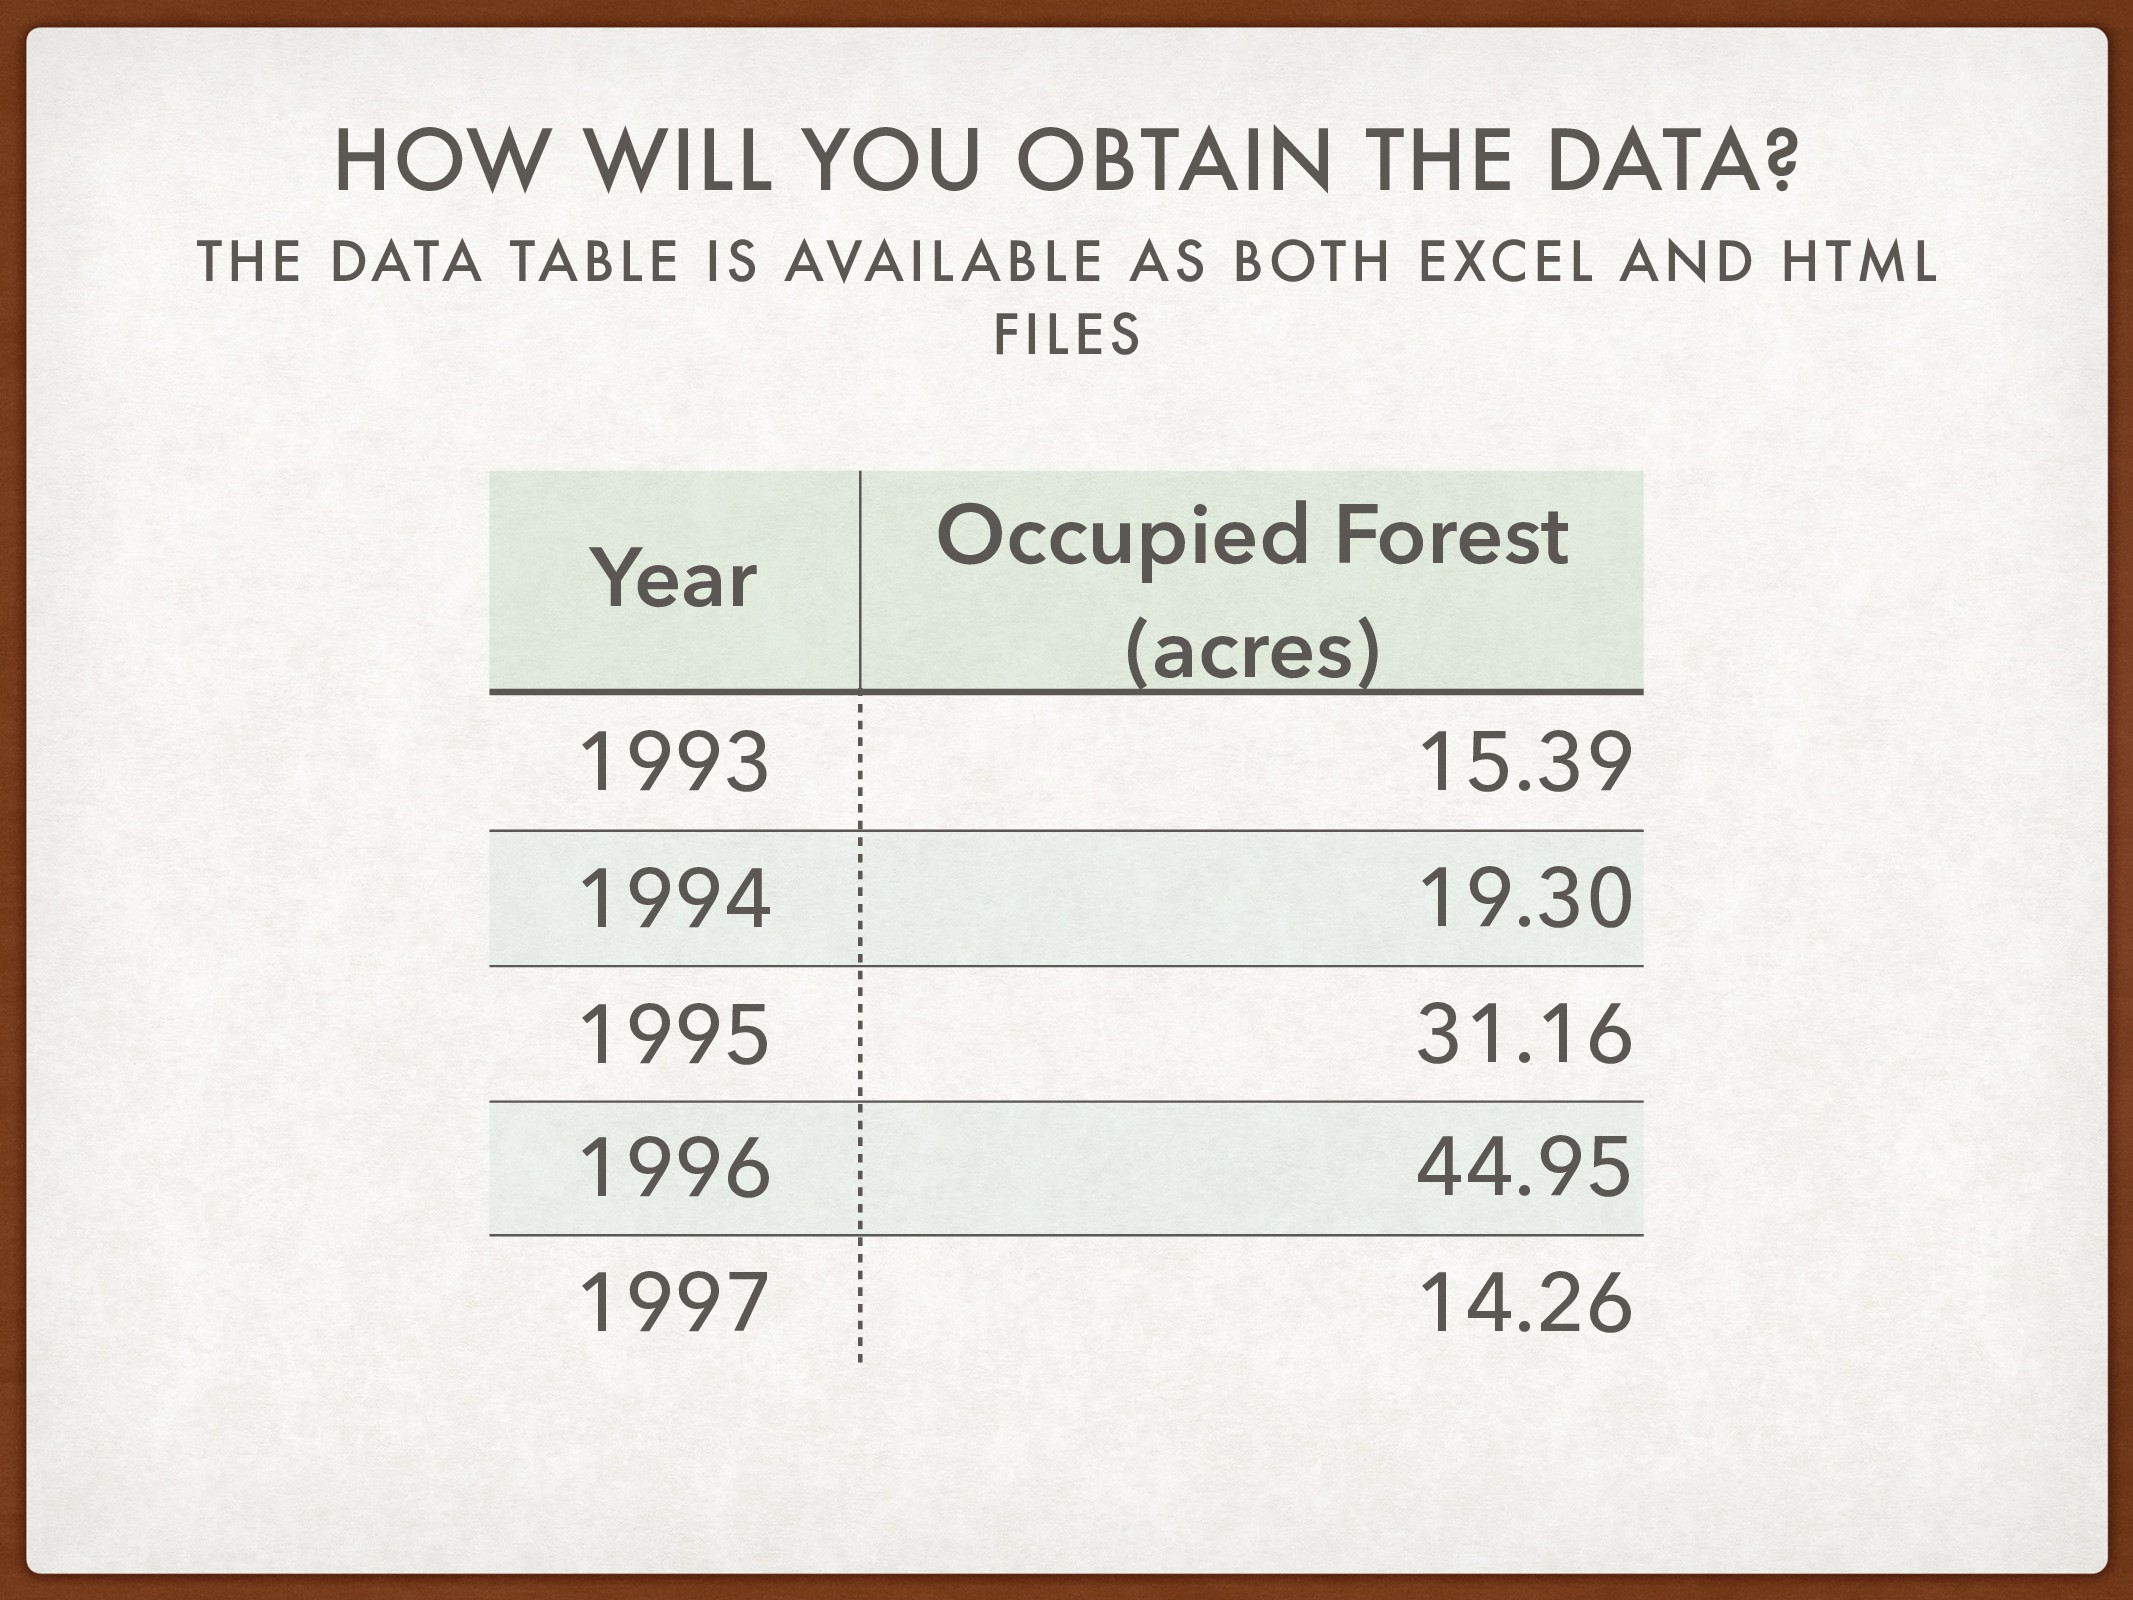 THE DATA TABLE IS AVAILABLE AS BOTH EXCEL AND H...